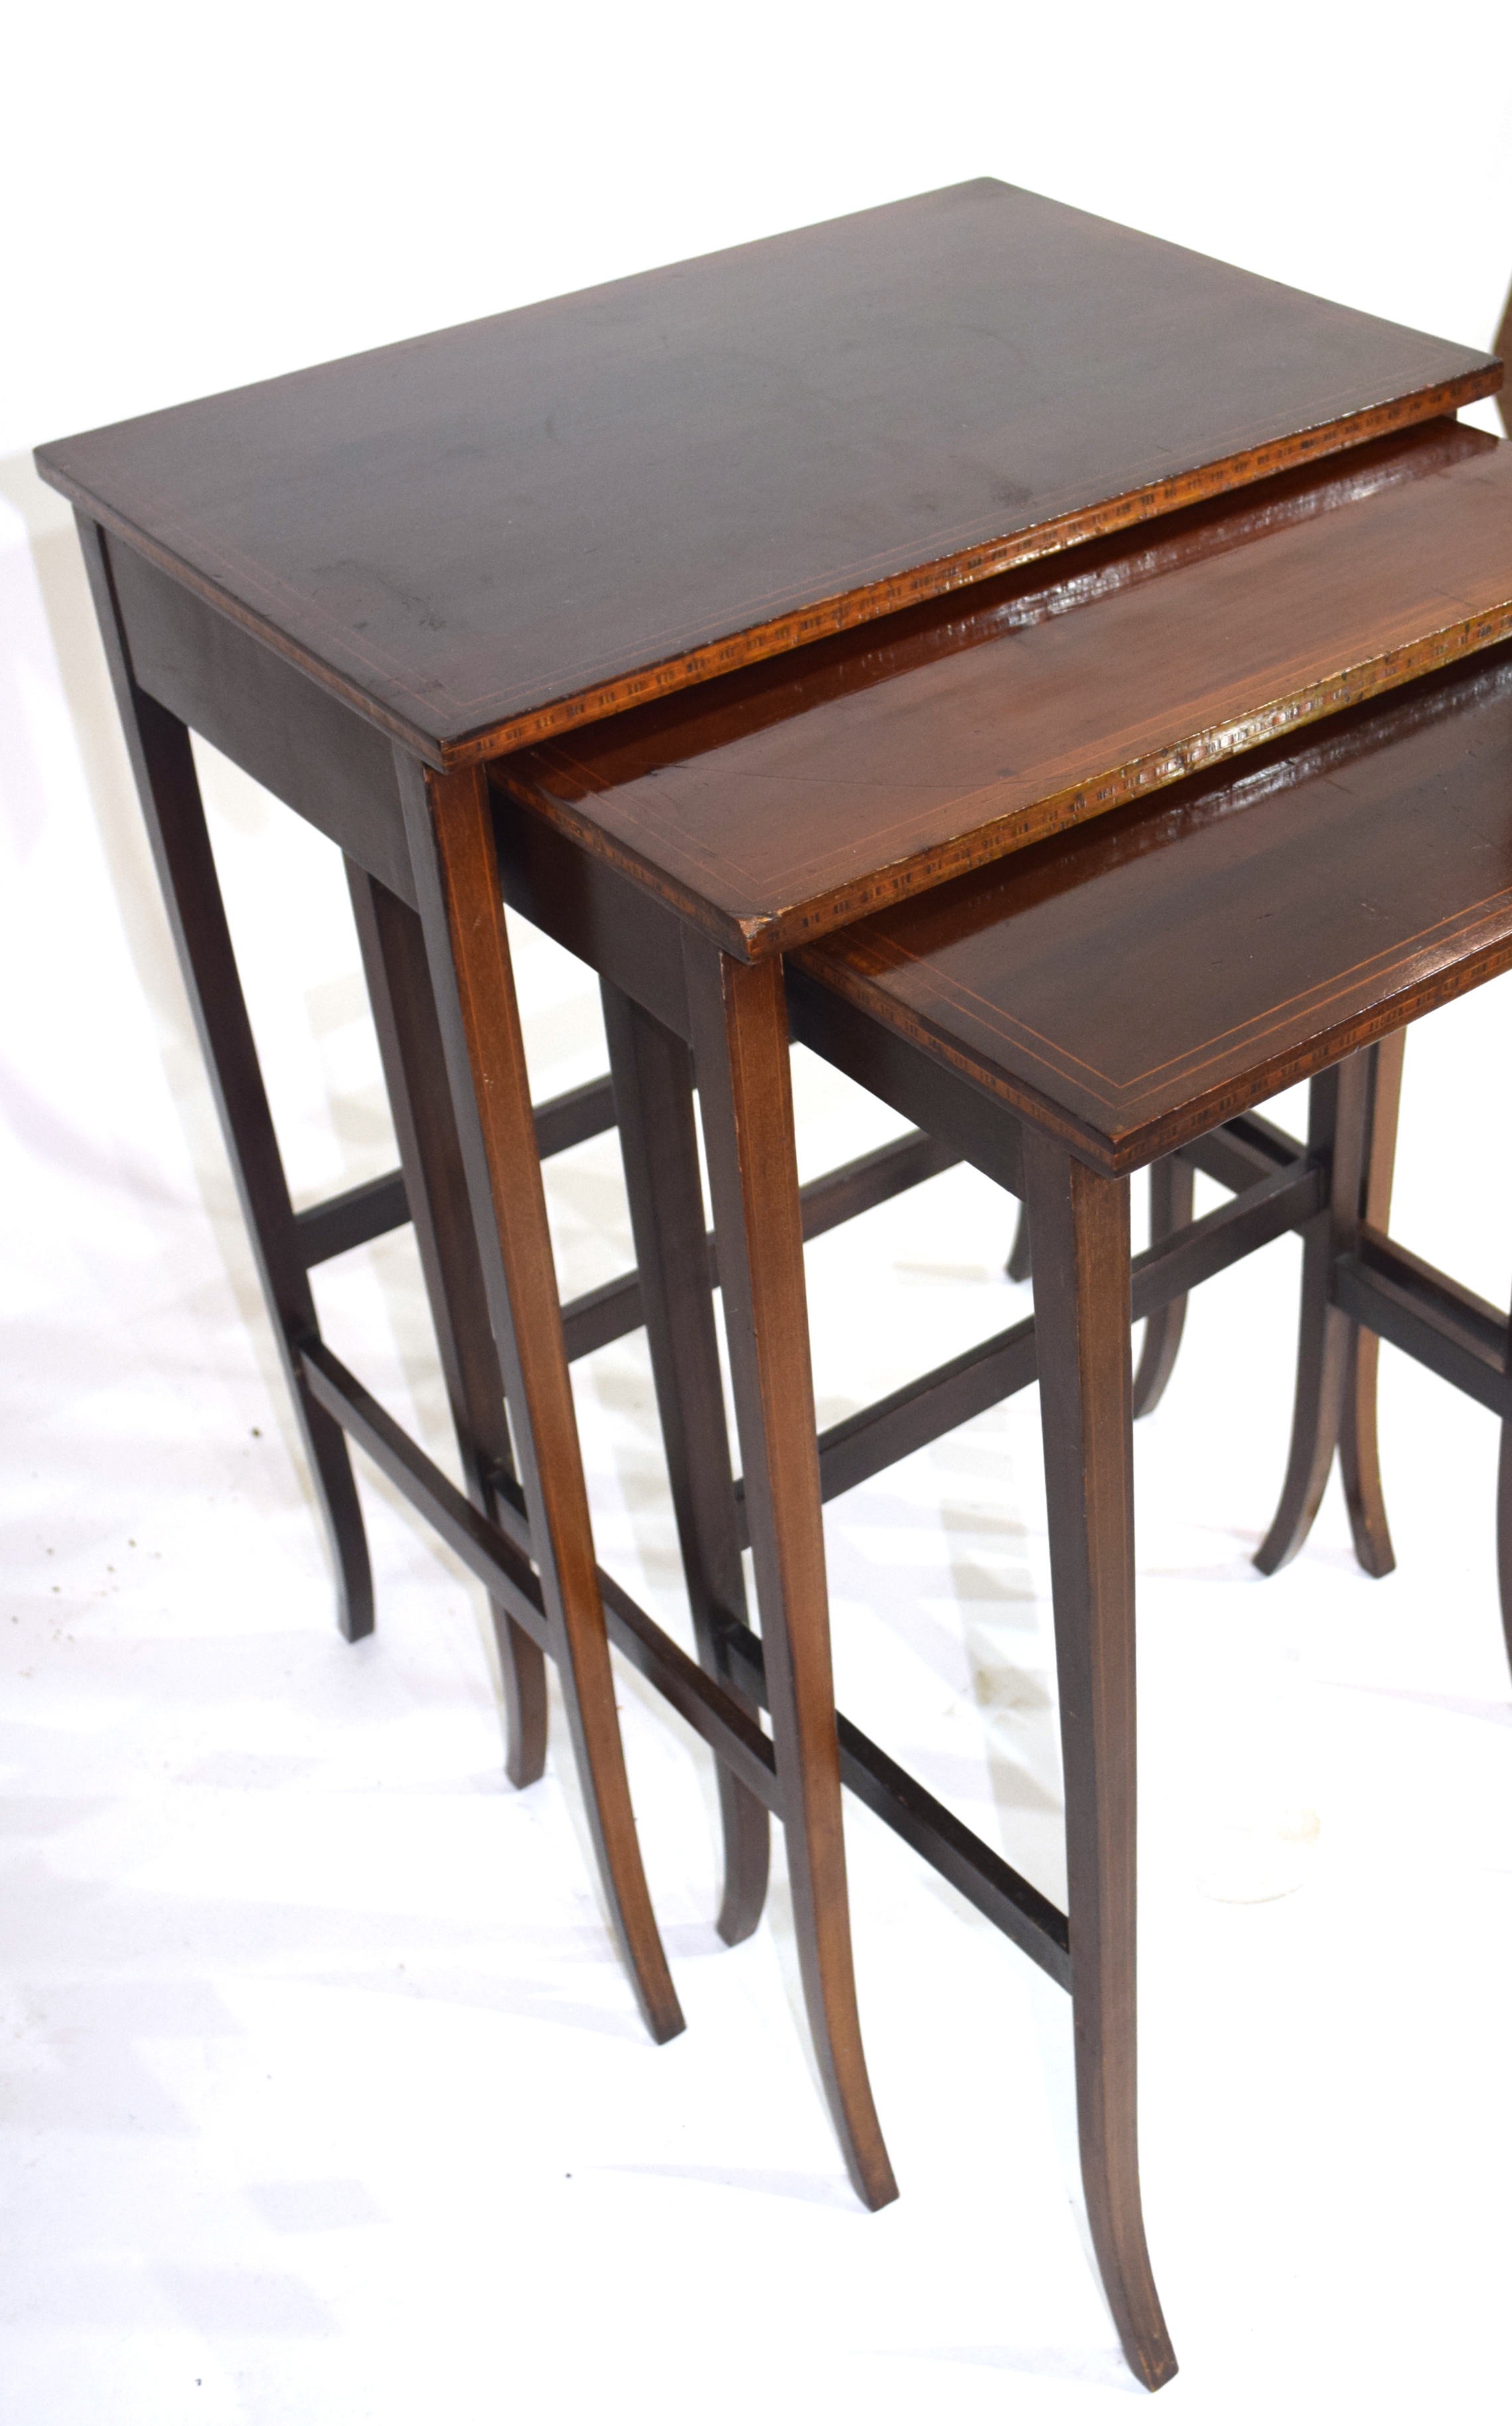 Nest of three Edwardian mahogany and inlaid occasional tables on slender legs, largest 49.5cm wide - Image 5 of 5